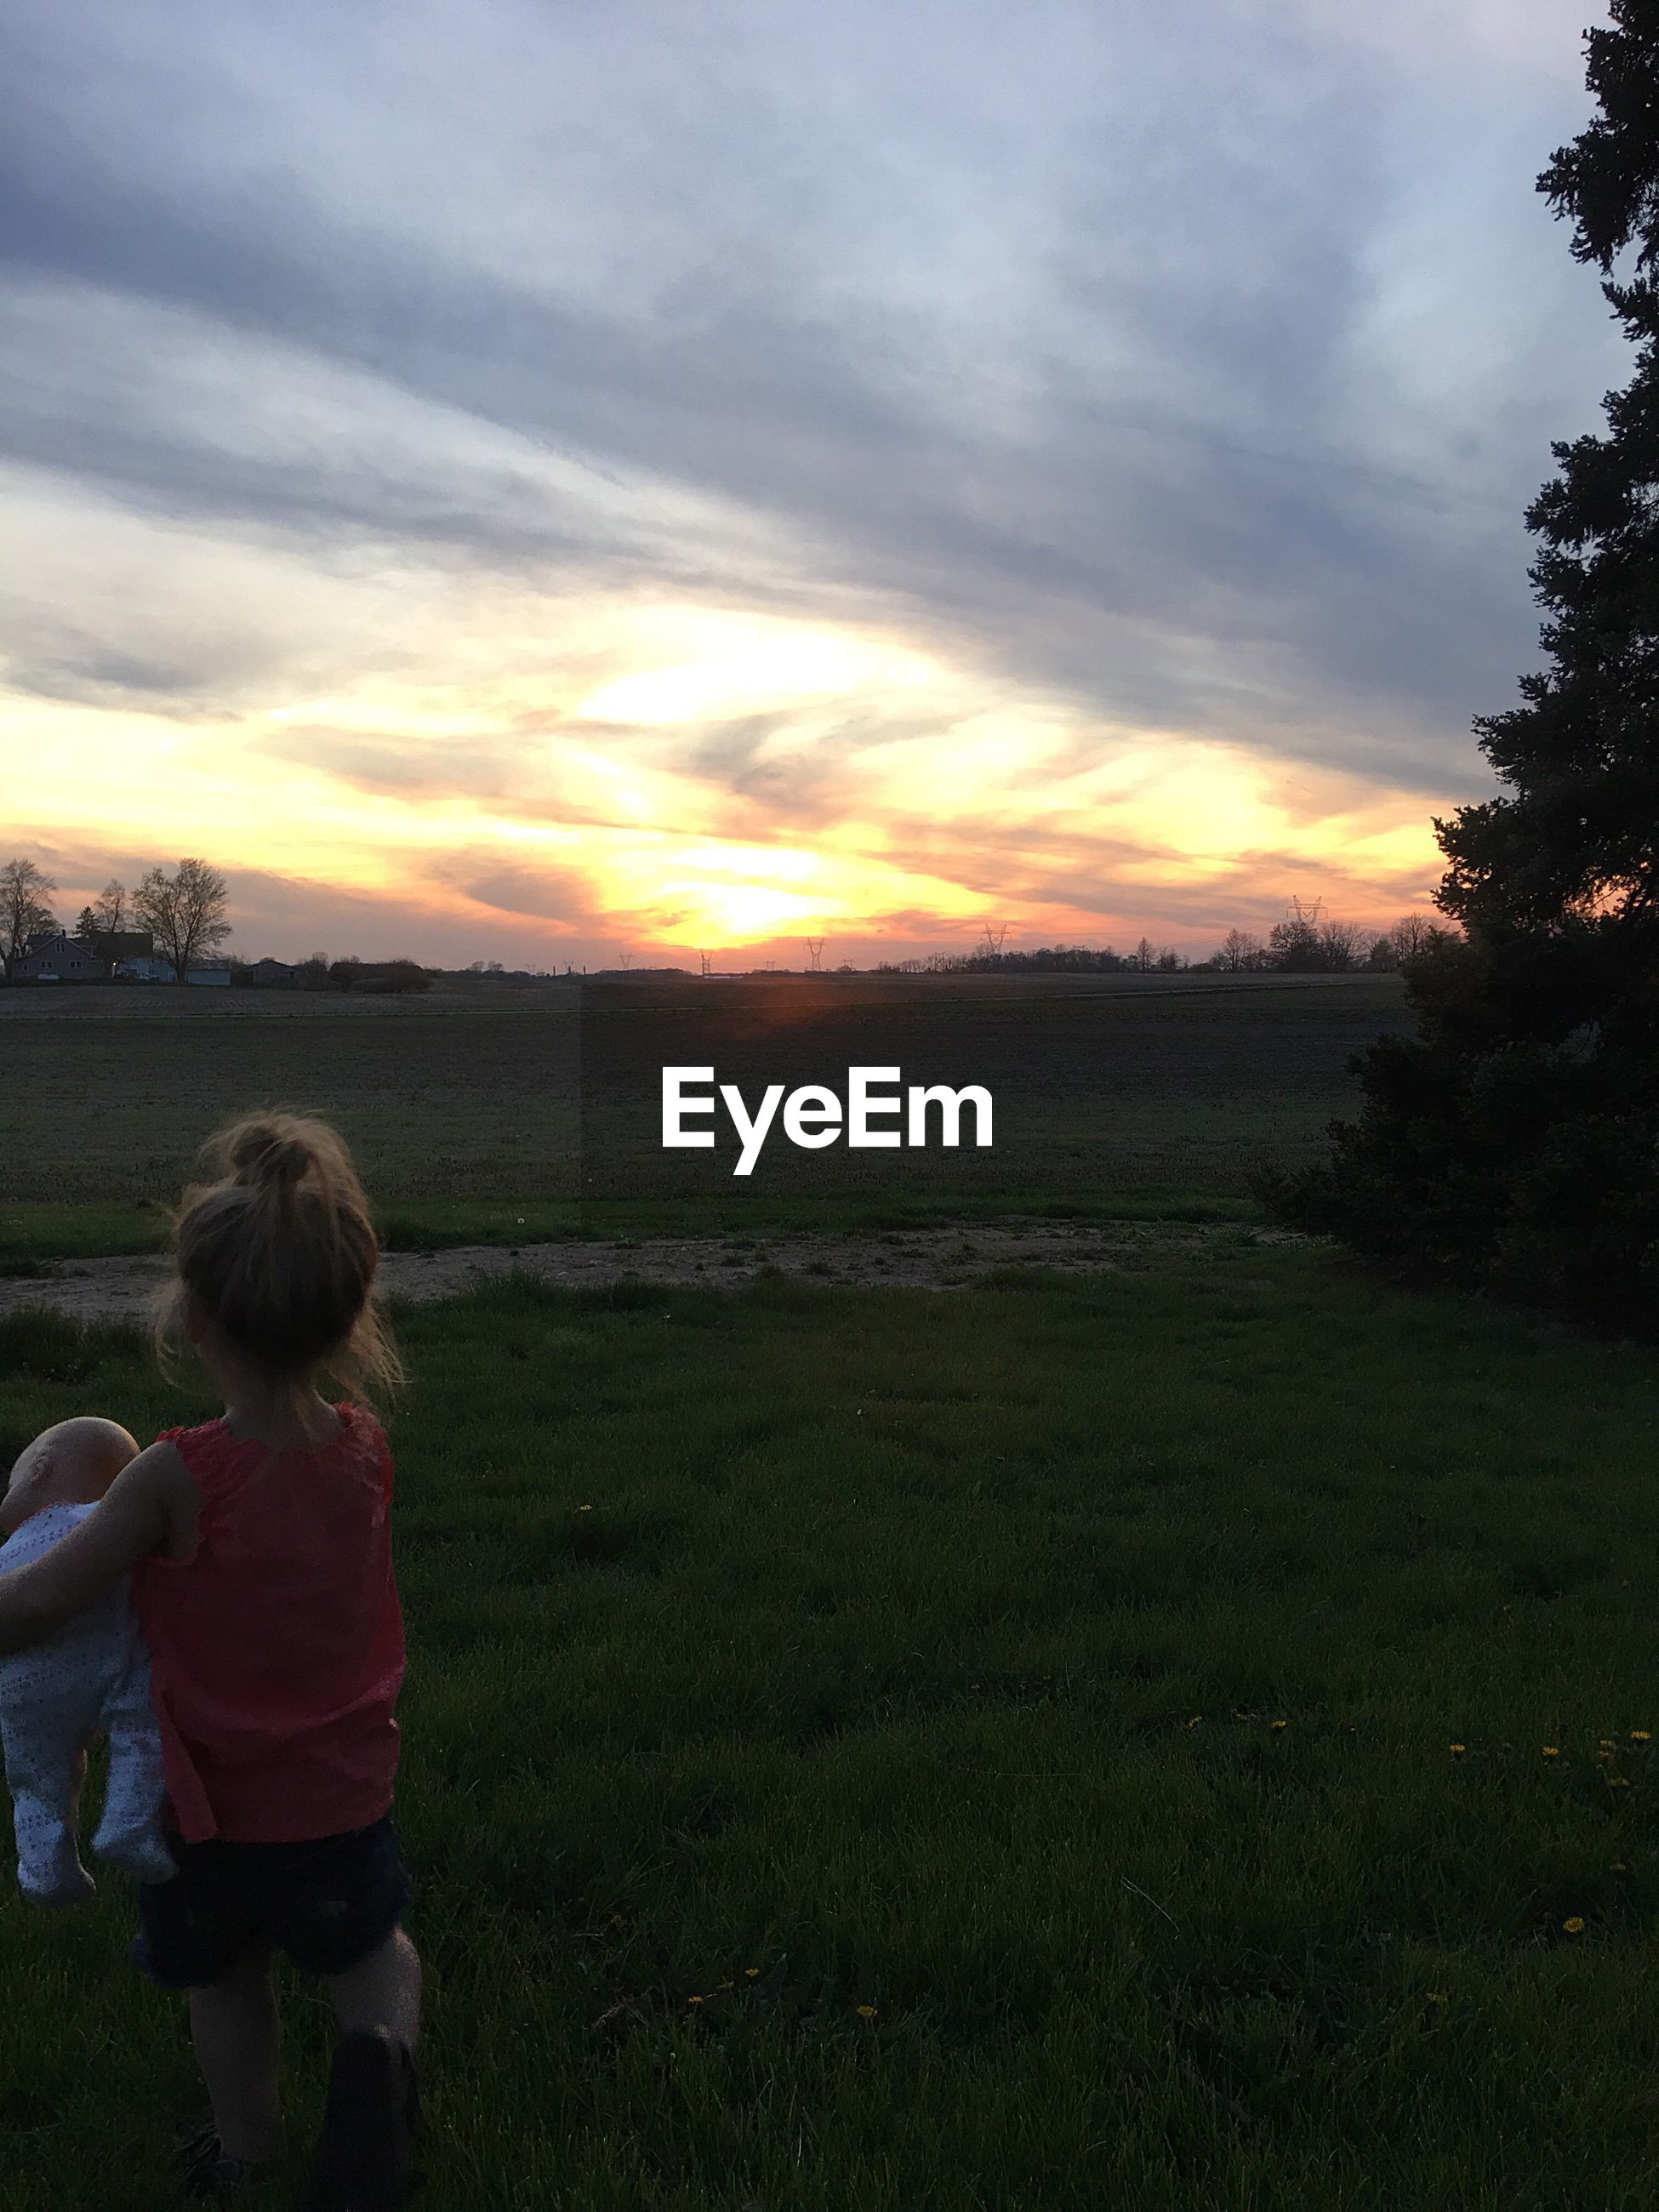 childhood, sunset, leisure activity, rear view, lifestyles, elementary age, standing, girls, boys, tree, field, casual clothing, scenics, sky, tranquility, beauty in nature, cloud - sky, tranquil scene, person, innocence, rural scene, outdoors, children only, atmospheric mood, orange color, cultivated land, sunbeam